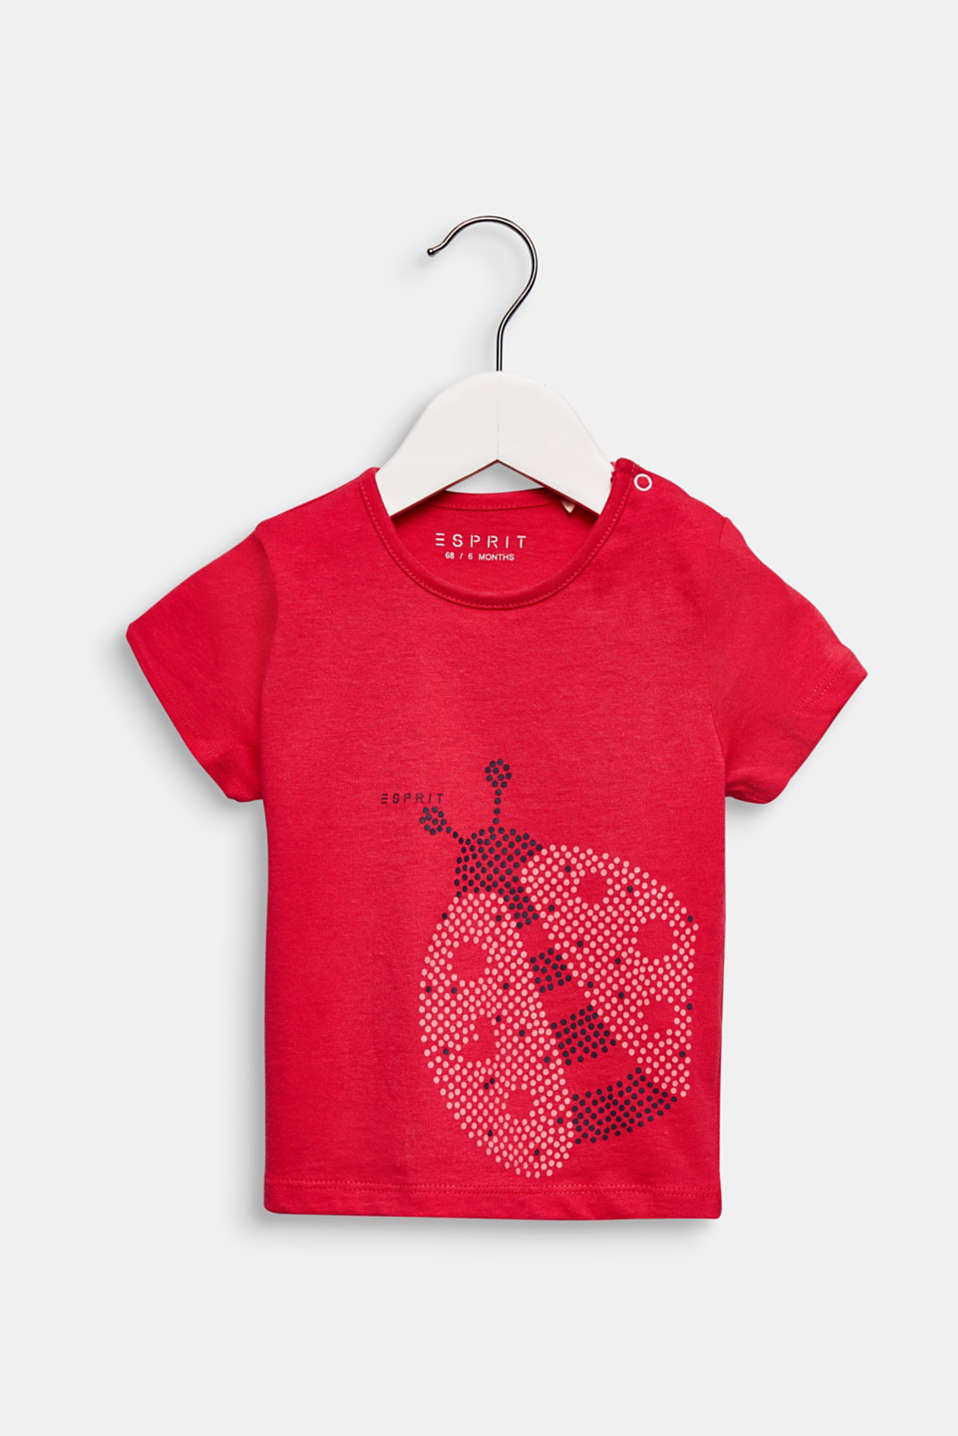 T-shirt with ladybird print, 100% cotton, LCRASPBERRY, detail image number 0